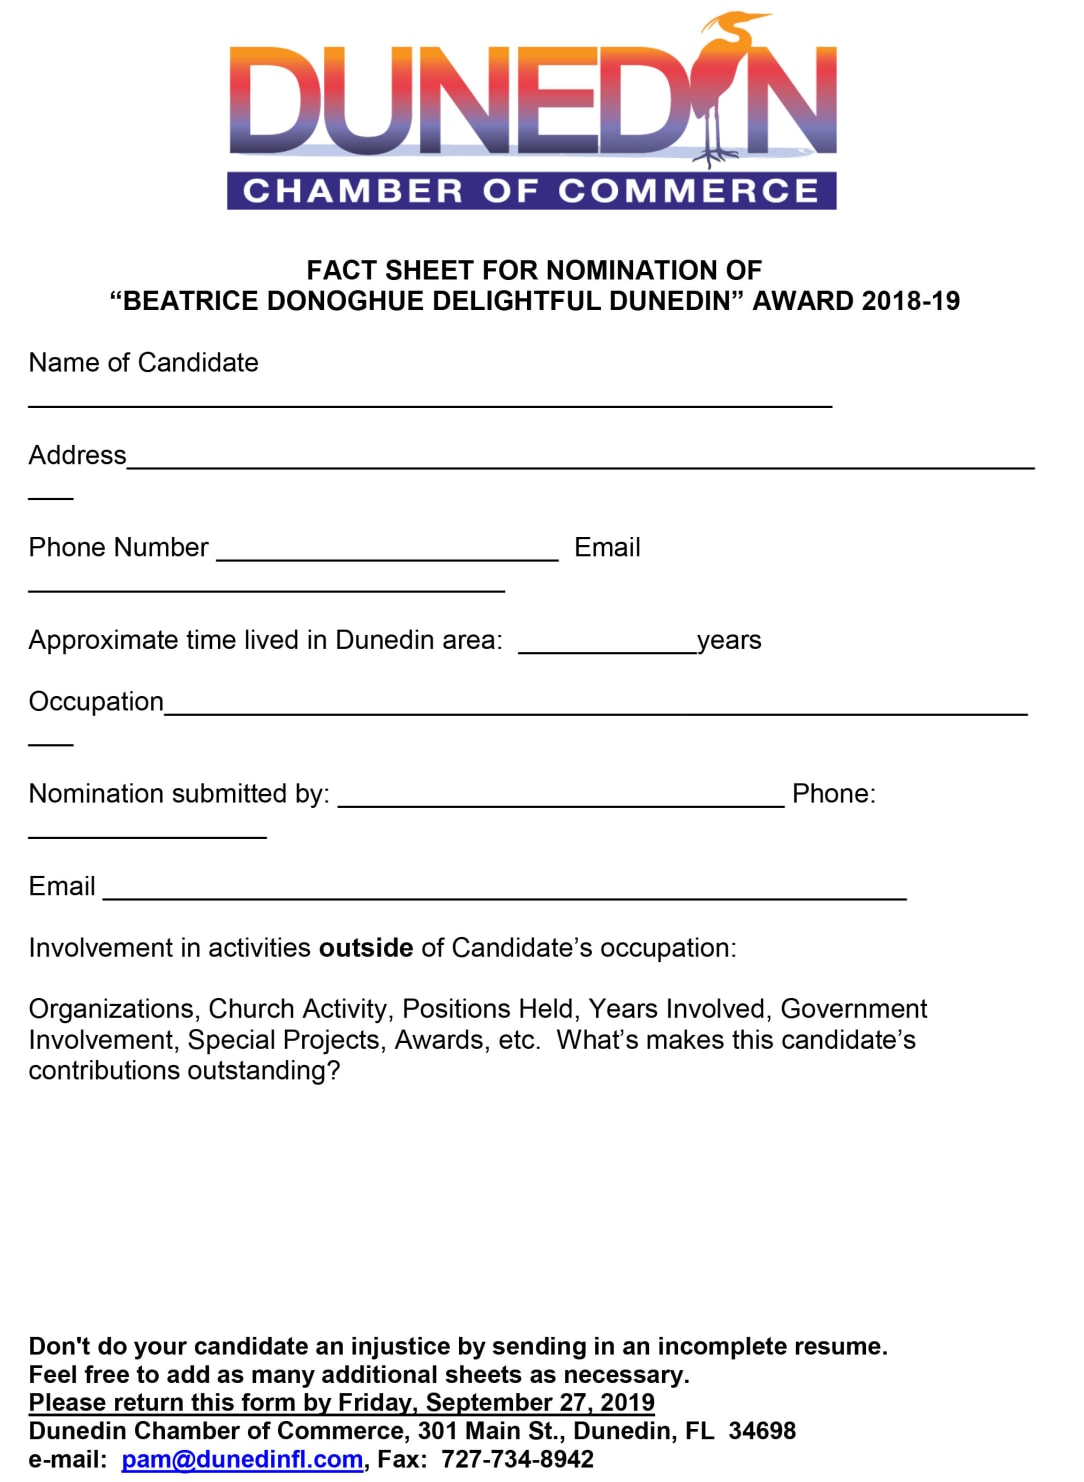 Delightful-Nomination-Form-2019-w1084.jpg